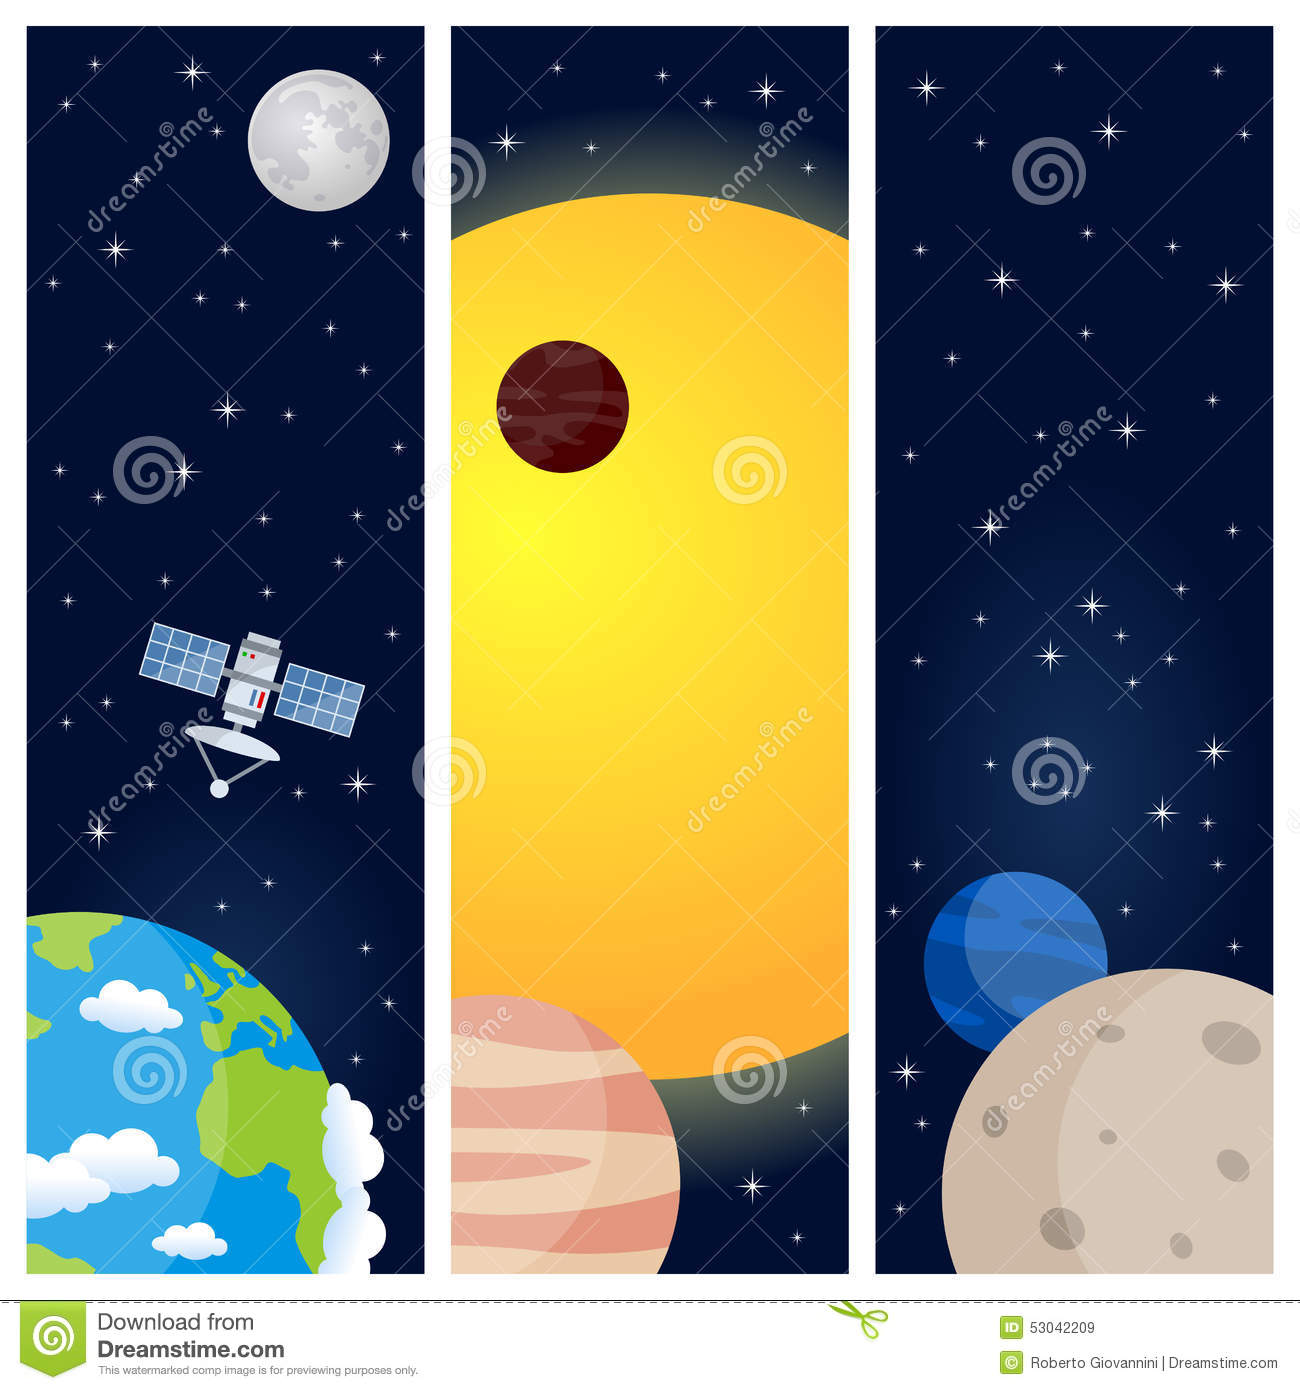 solar system poster vertical - photo #21